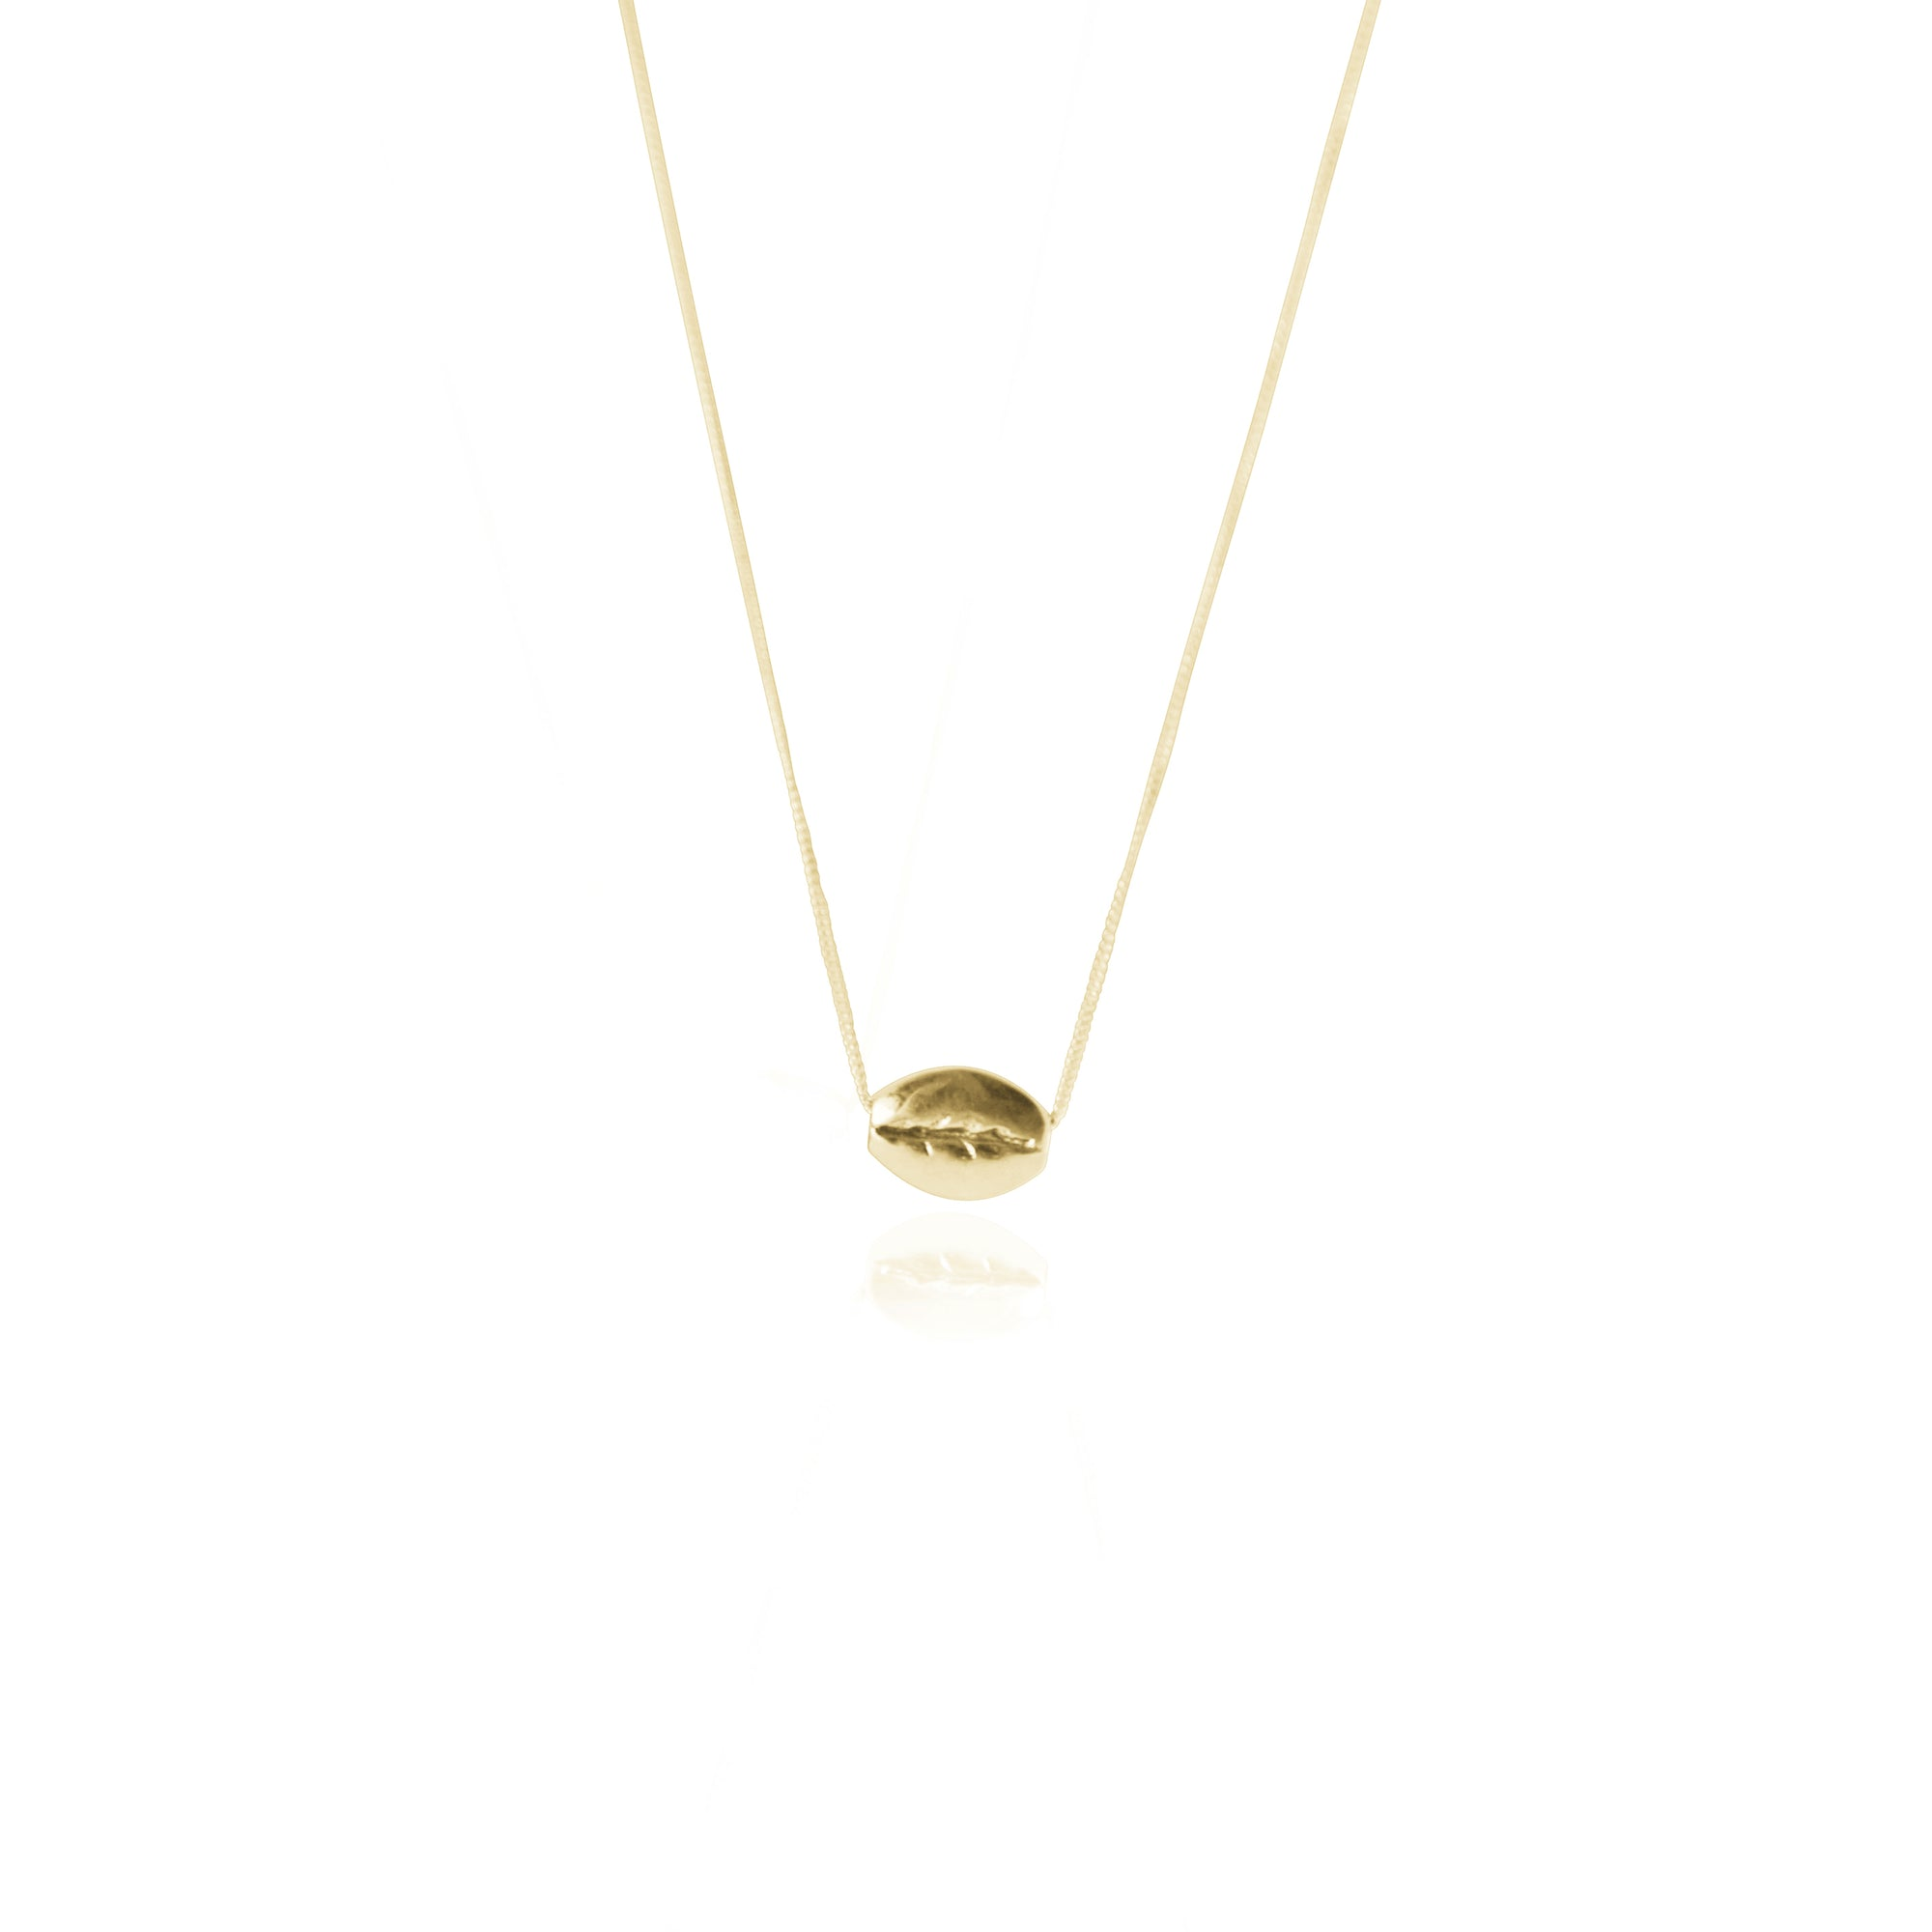 Coconut and Bliss x La Luna Rose Kintamani Necklace - GOLD